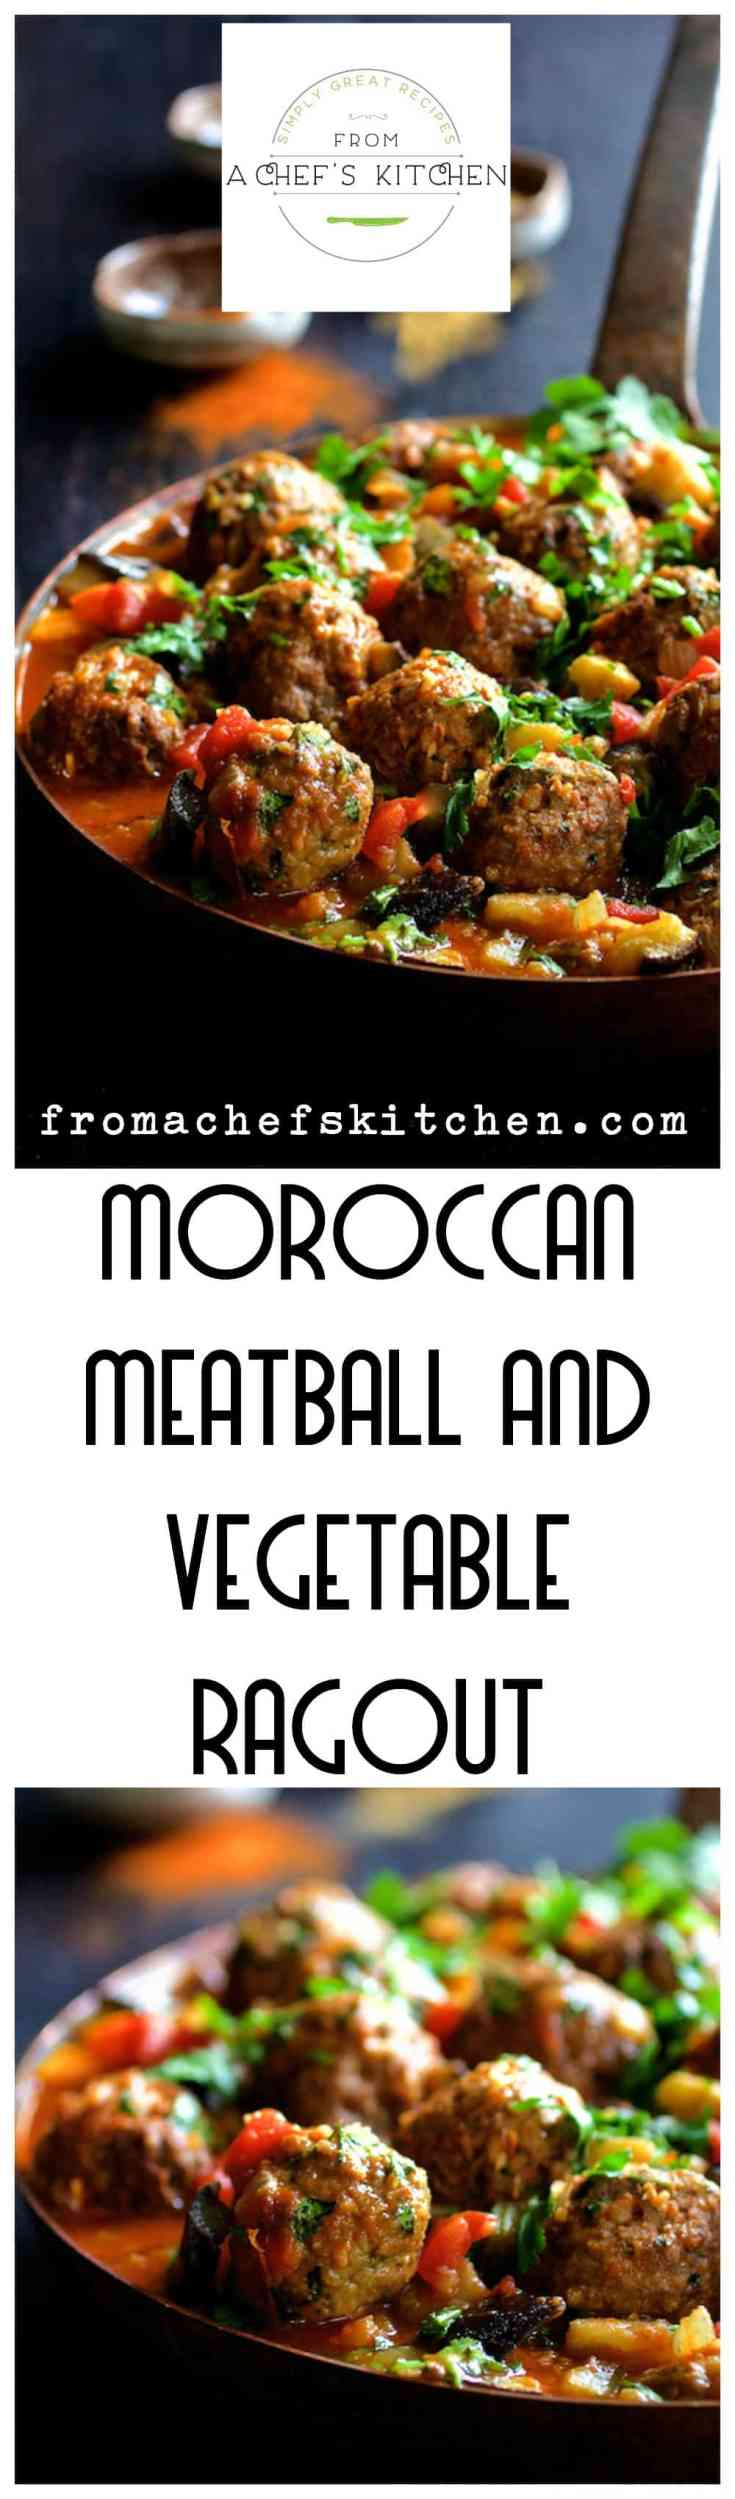 Moroccan Meatball and Vegetable Ragout is serious meatball and vegetable goodness going on!  Sure to spice up any night with tender spiced meatballs along with onions, bell peppers and eggplant blanketed in a zesty tomato-based sauce. #meatball #moroccan #moroccanfood #moroccanmeatball #vegetable